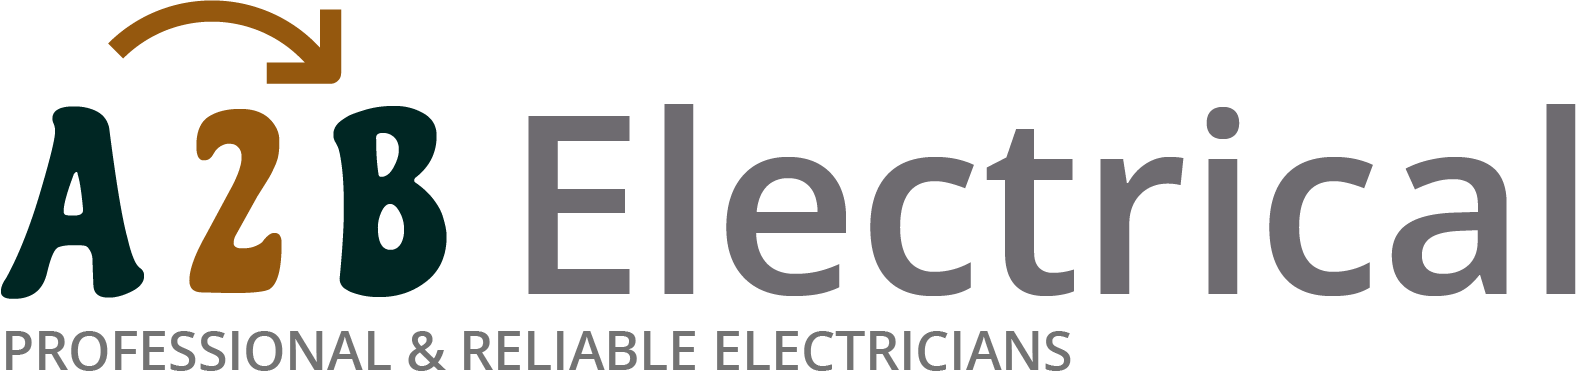 If you have electrical wiring problems in Redbridge, we can provide an electrician to have a look for you.